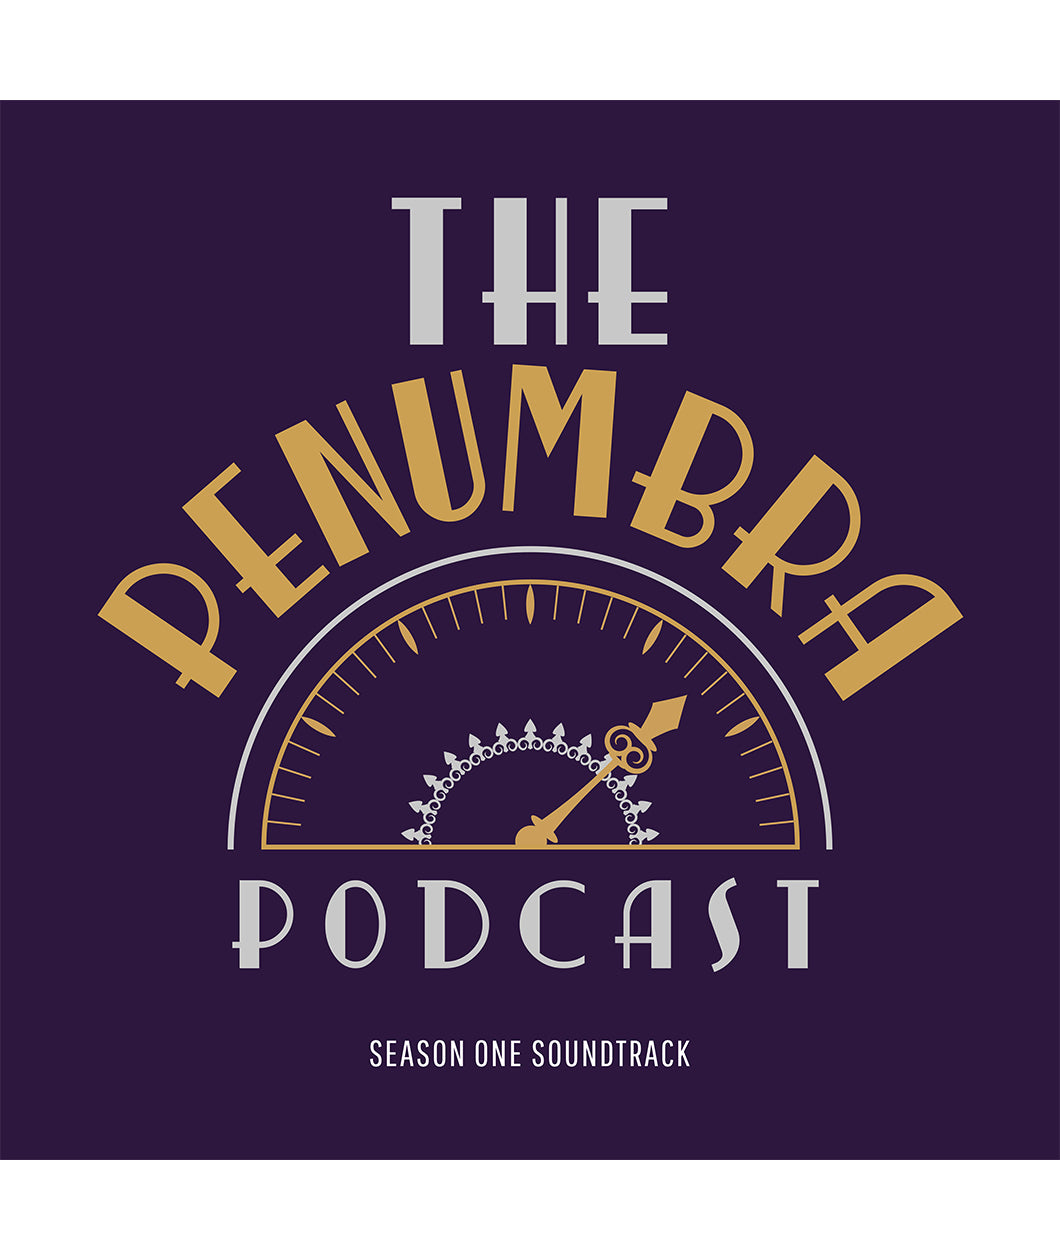 The Penumbra Podcast Season 1 soundtrack